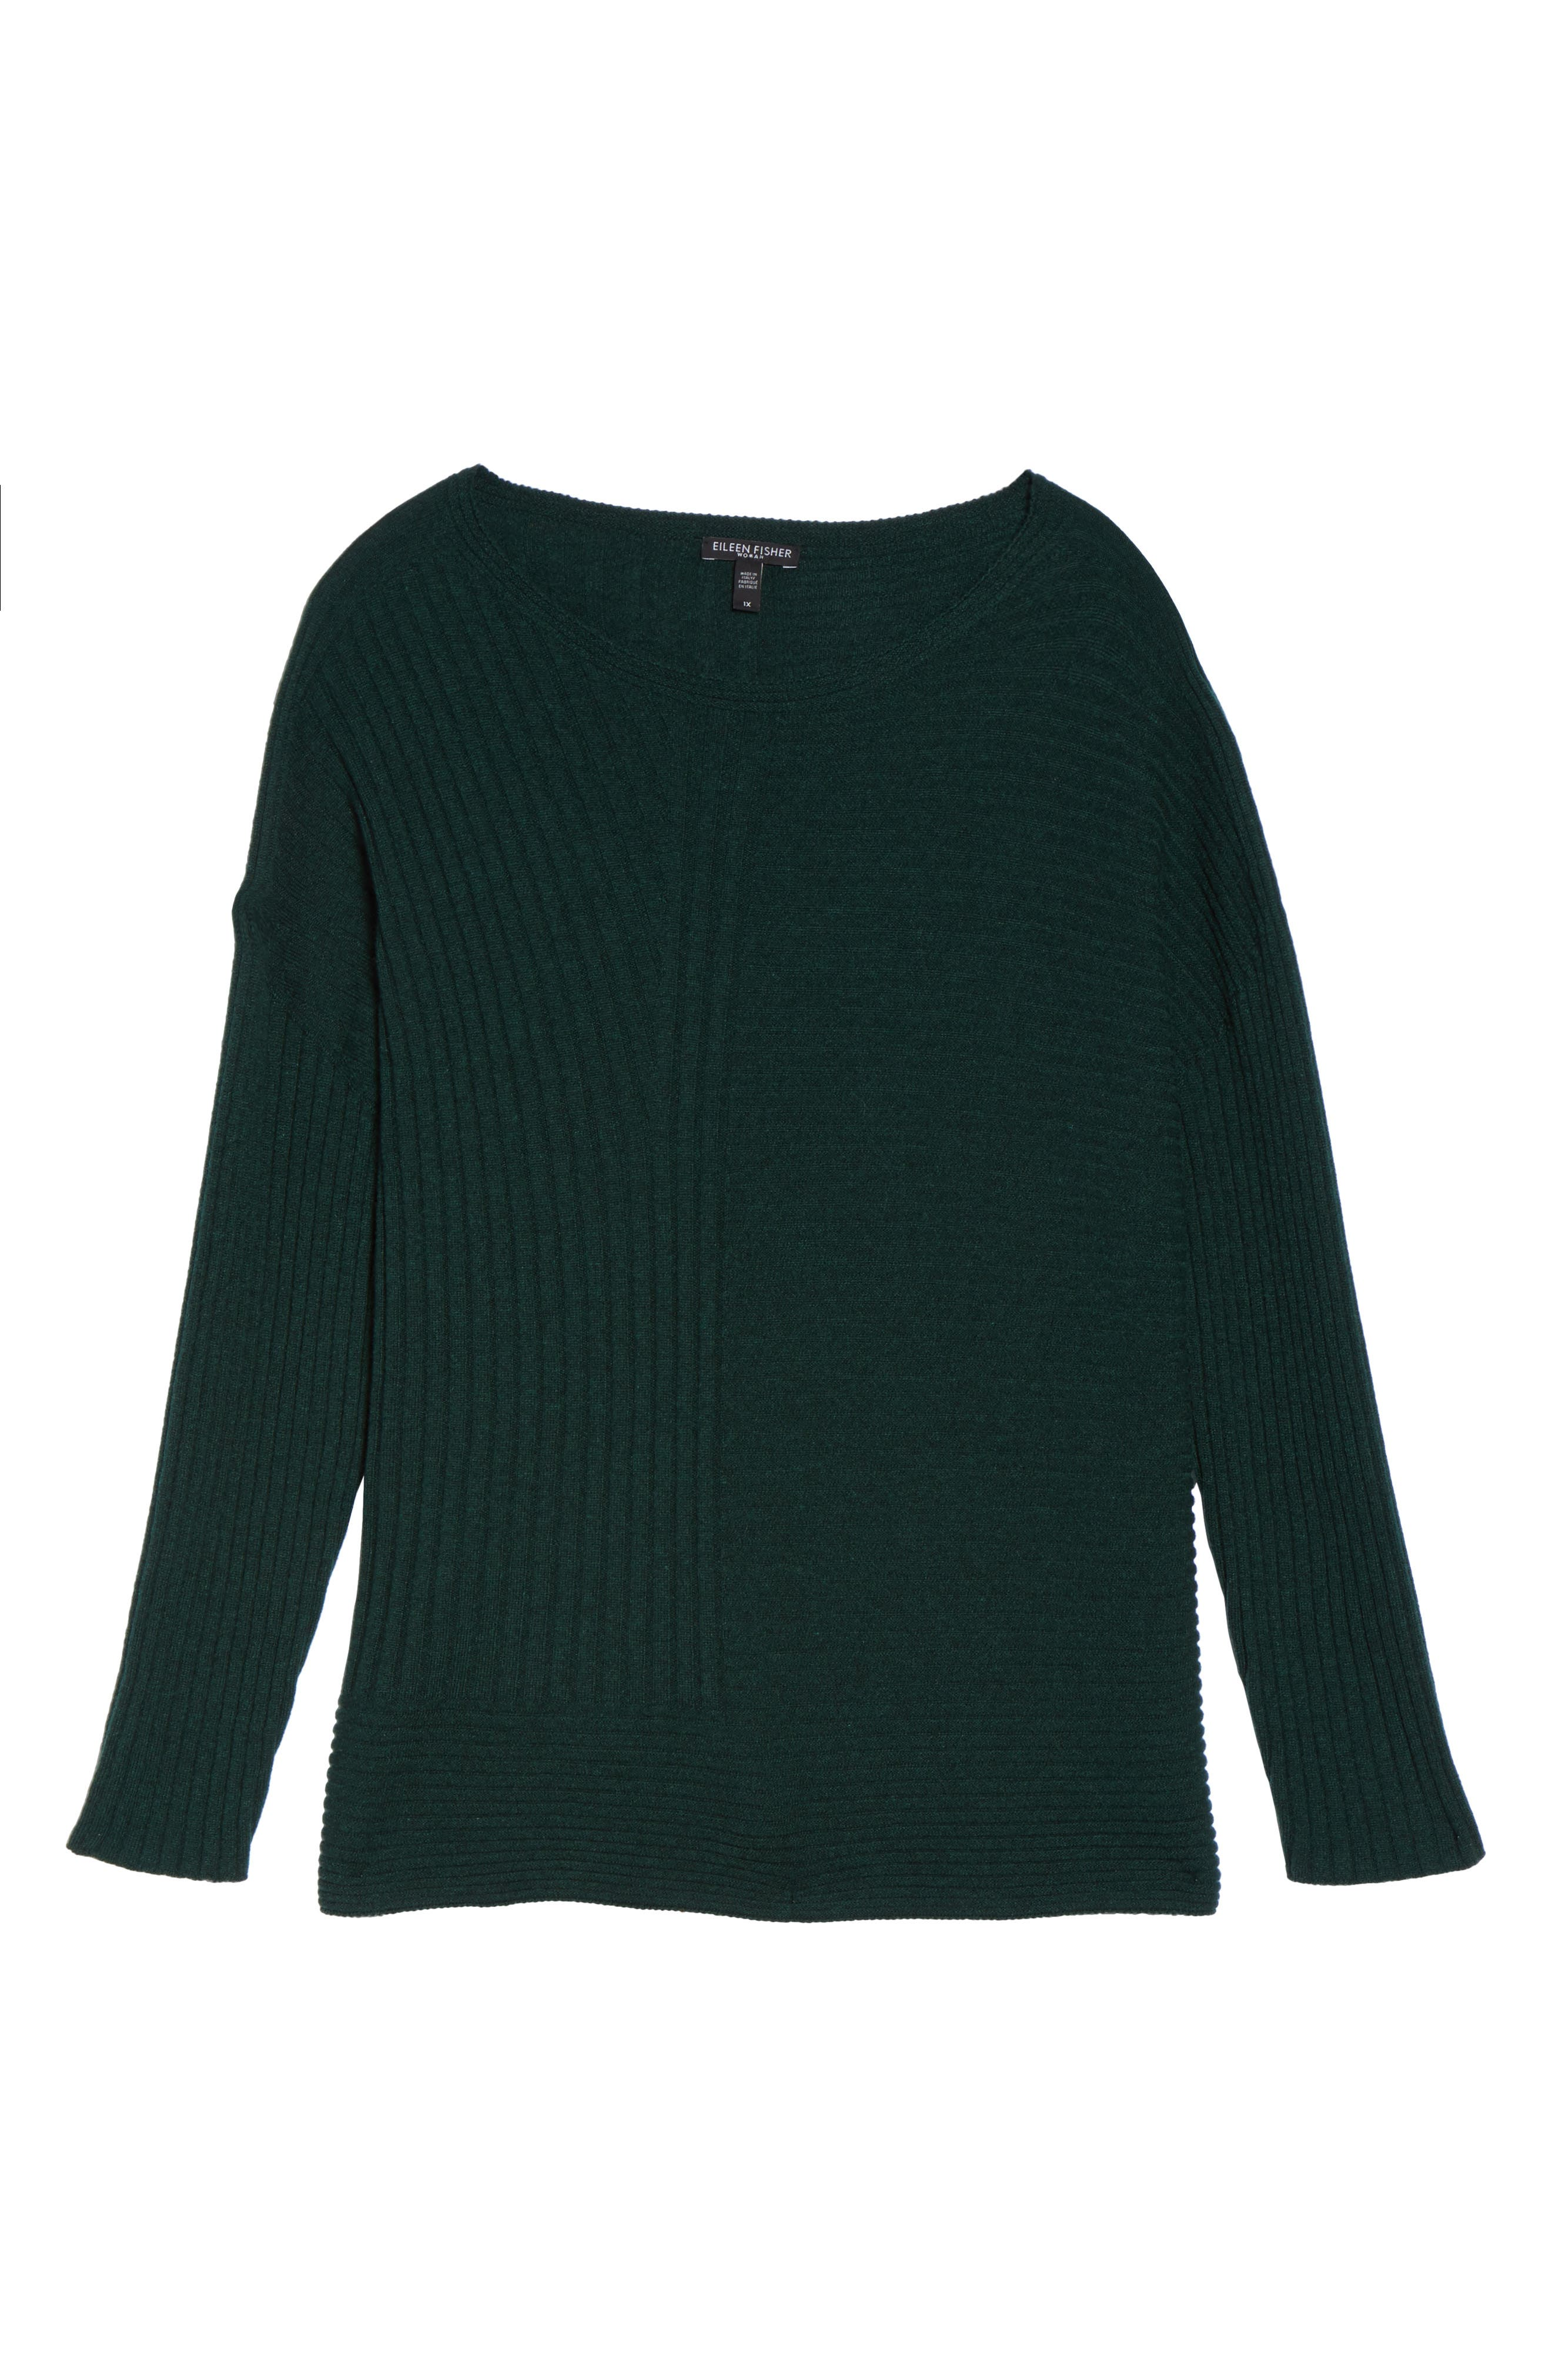 Ribbed Cashmere Sweater,                             Alternate thumbnail 6, color,                             390